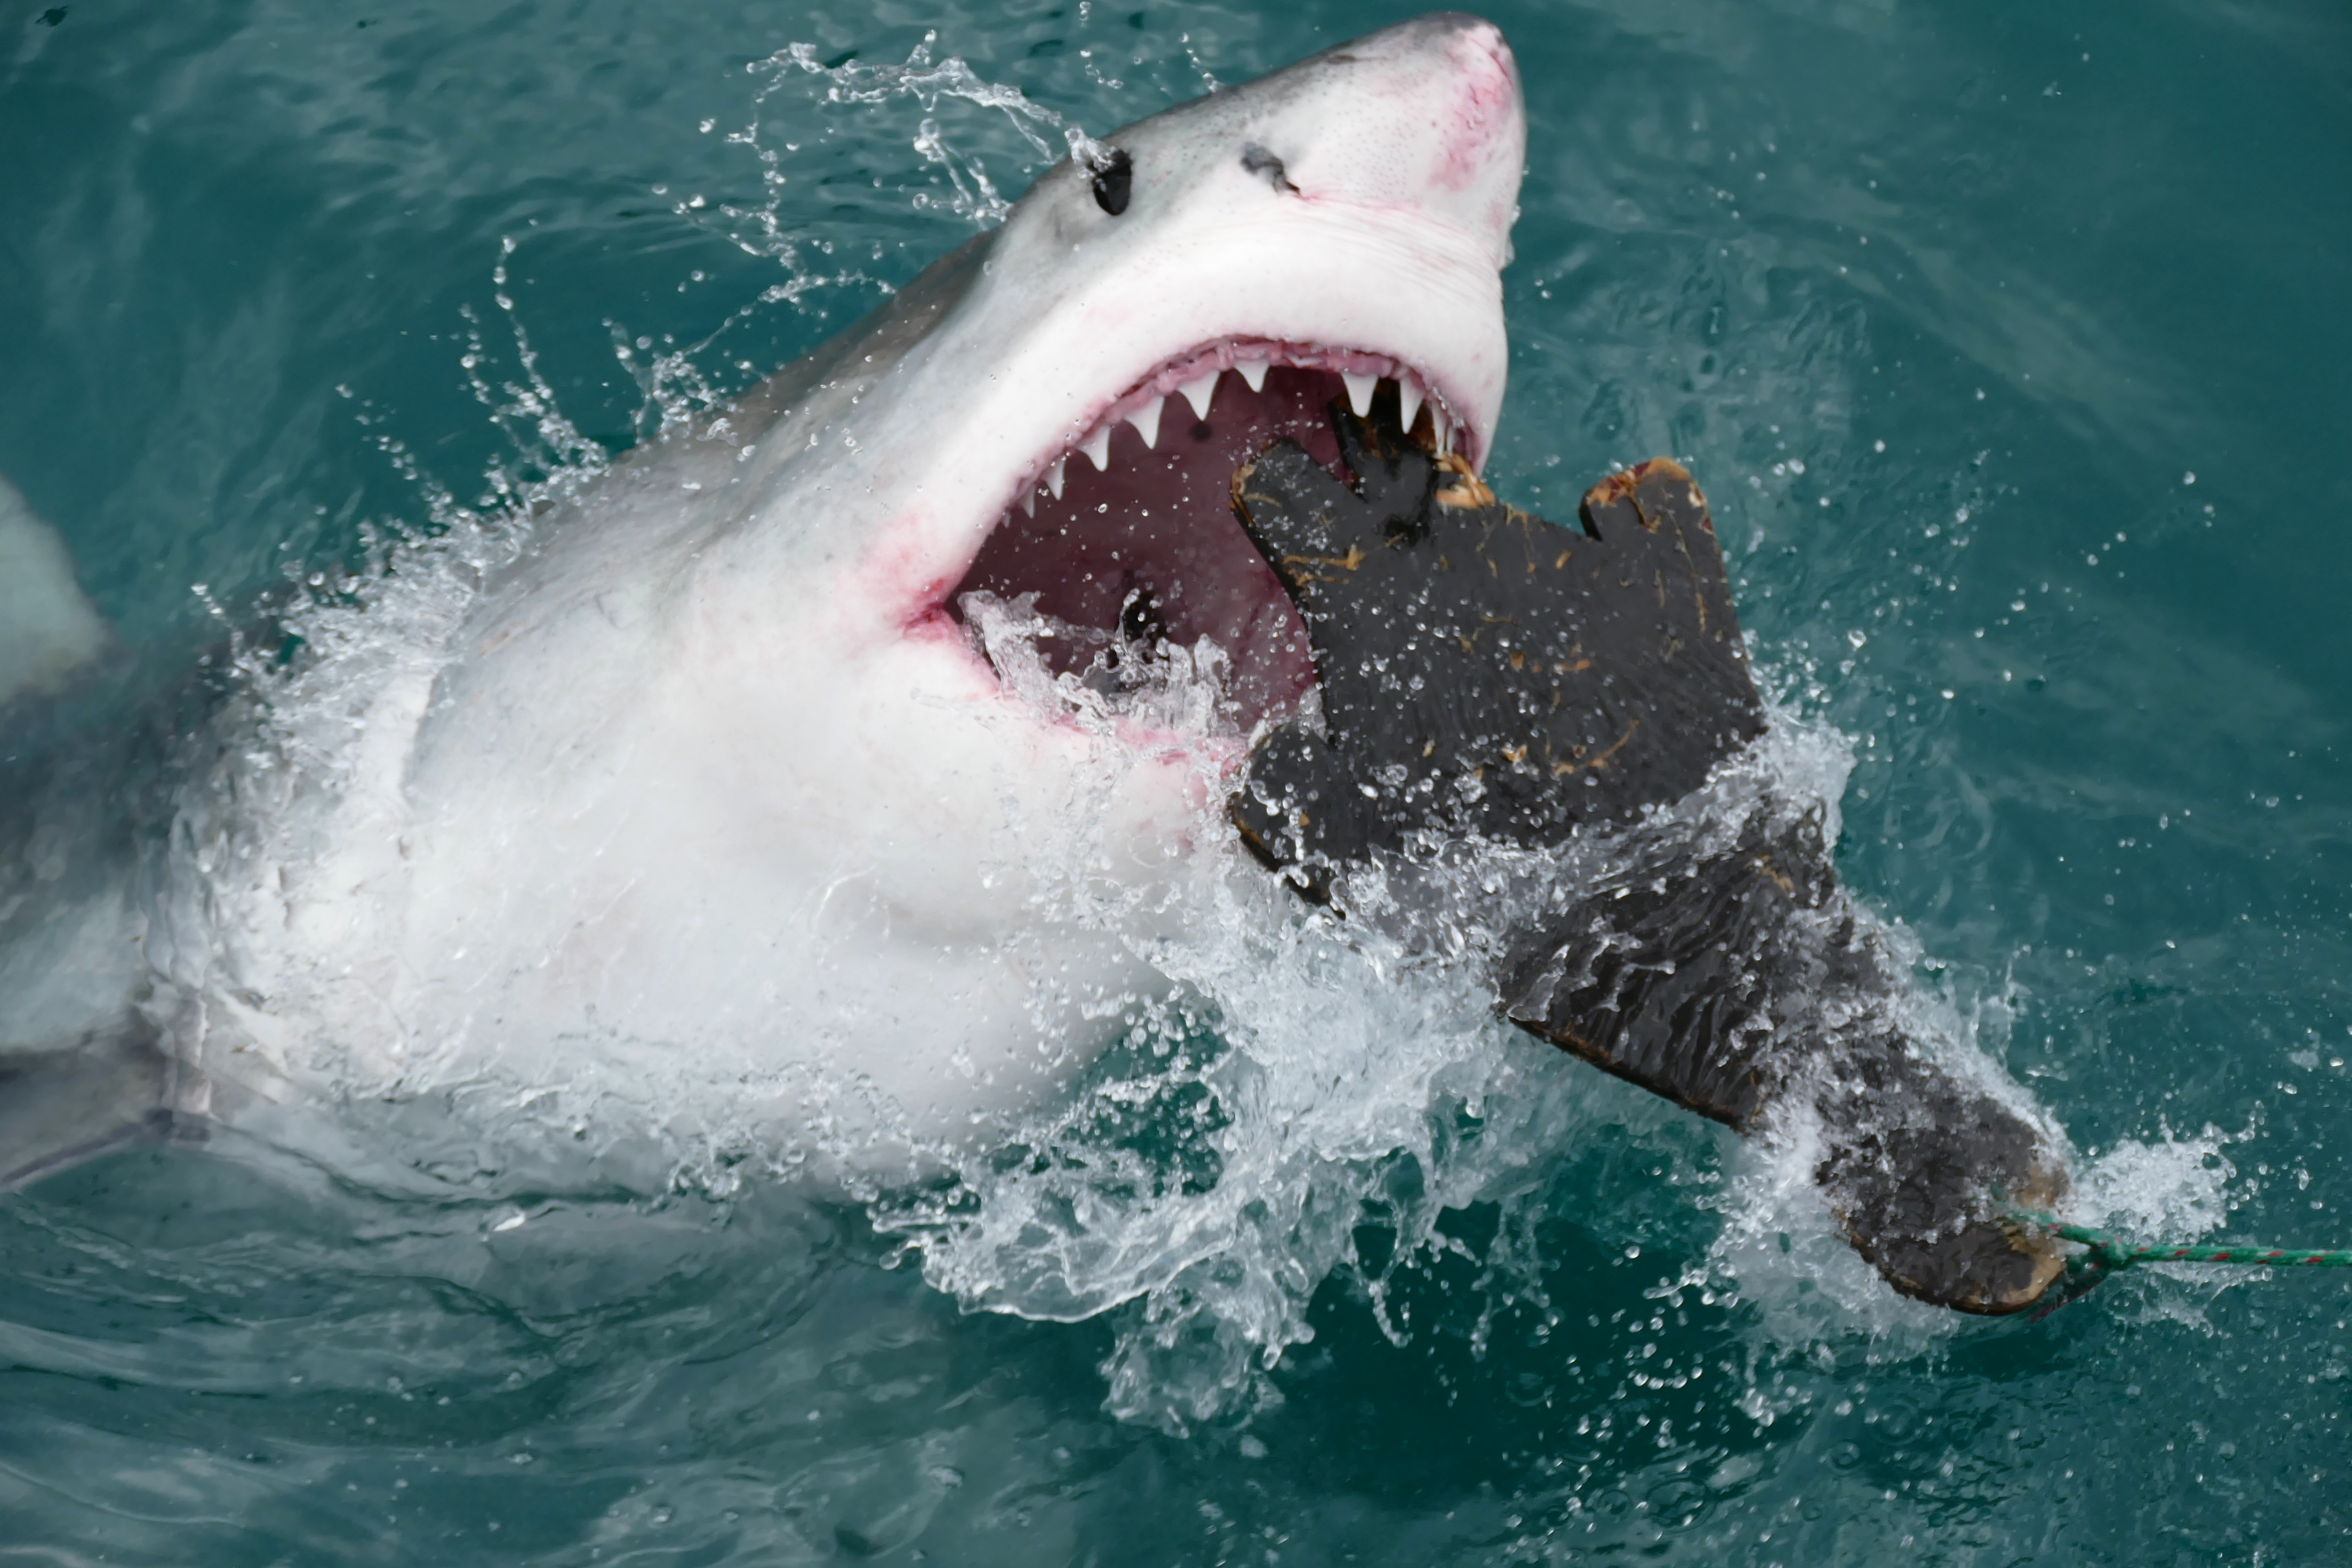 Great white shark attacks seal apologise, would